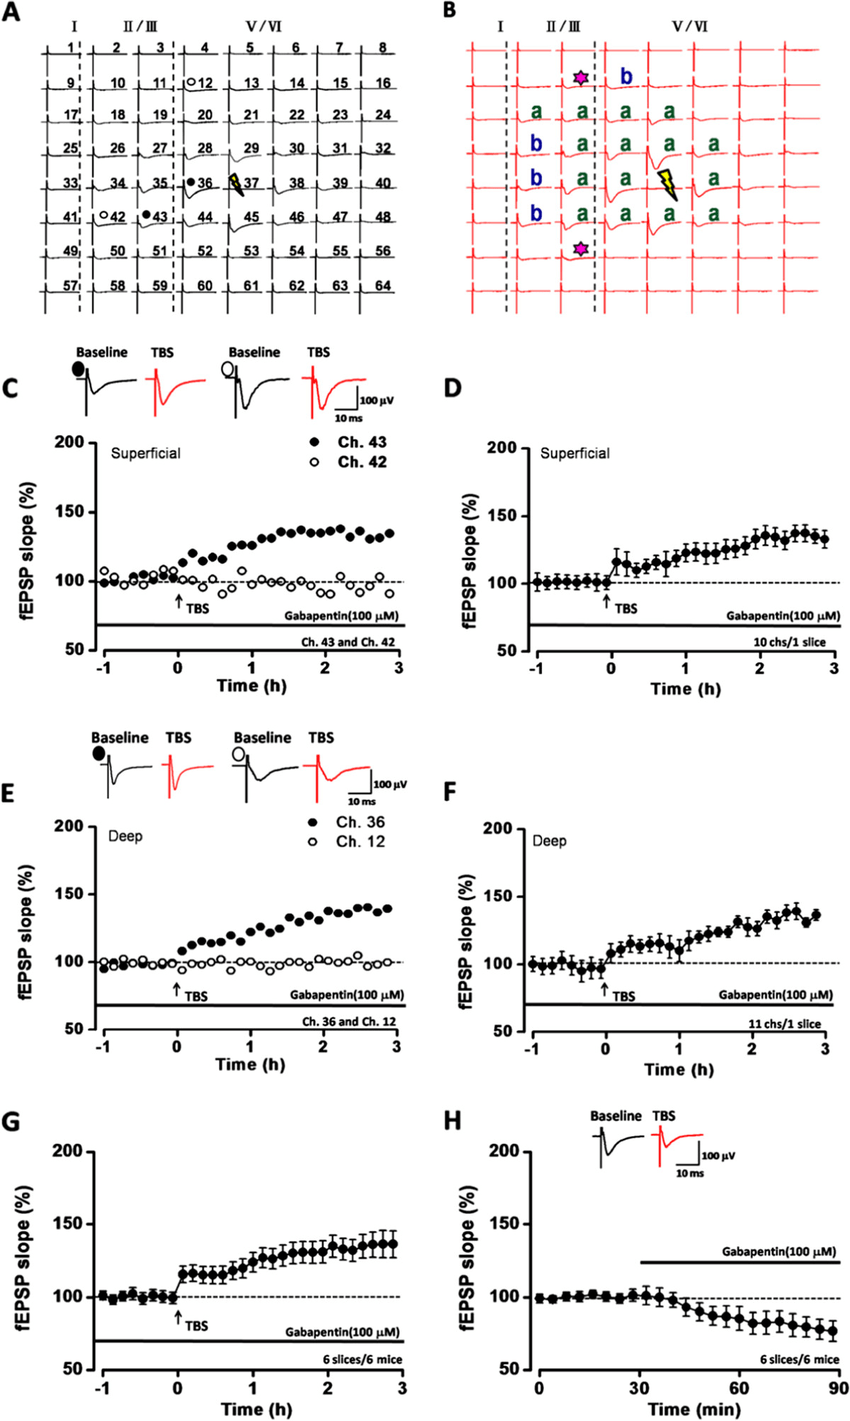 medium resolution of basic synaptic transmission and ltp in the acc with gabapentin application a b two